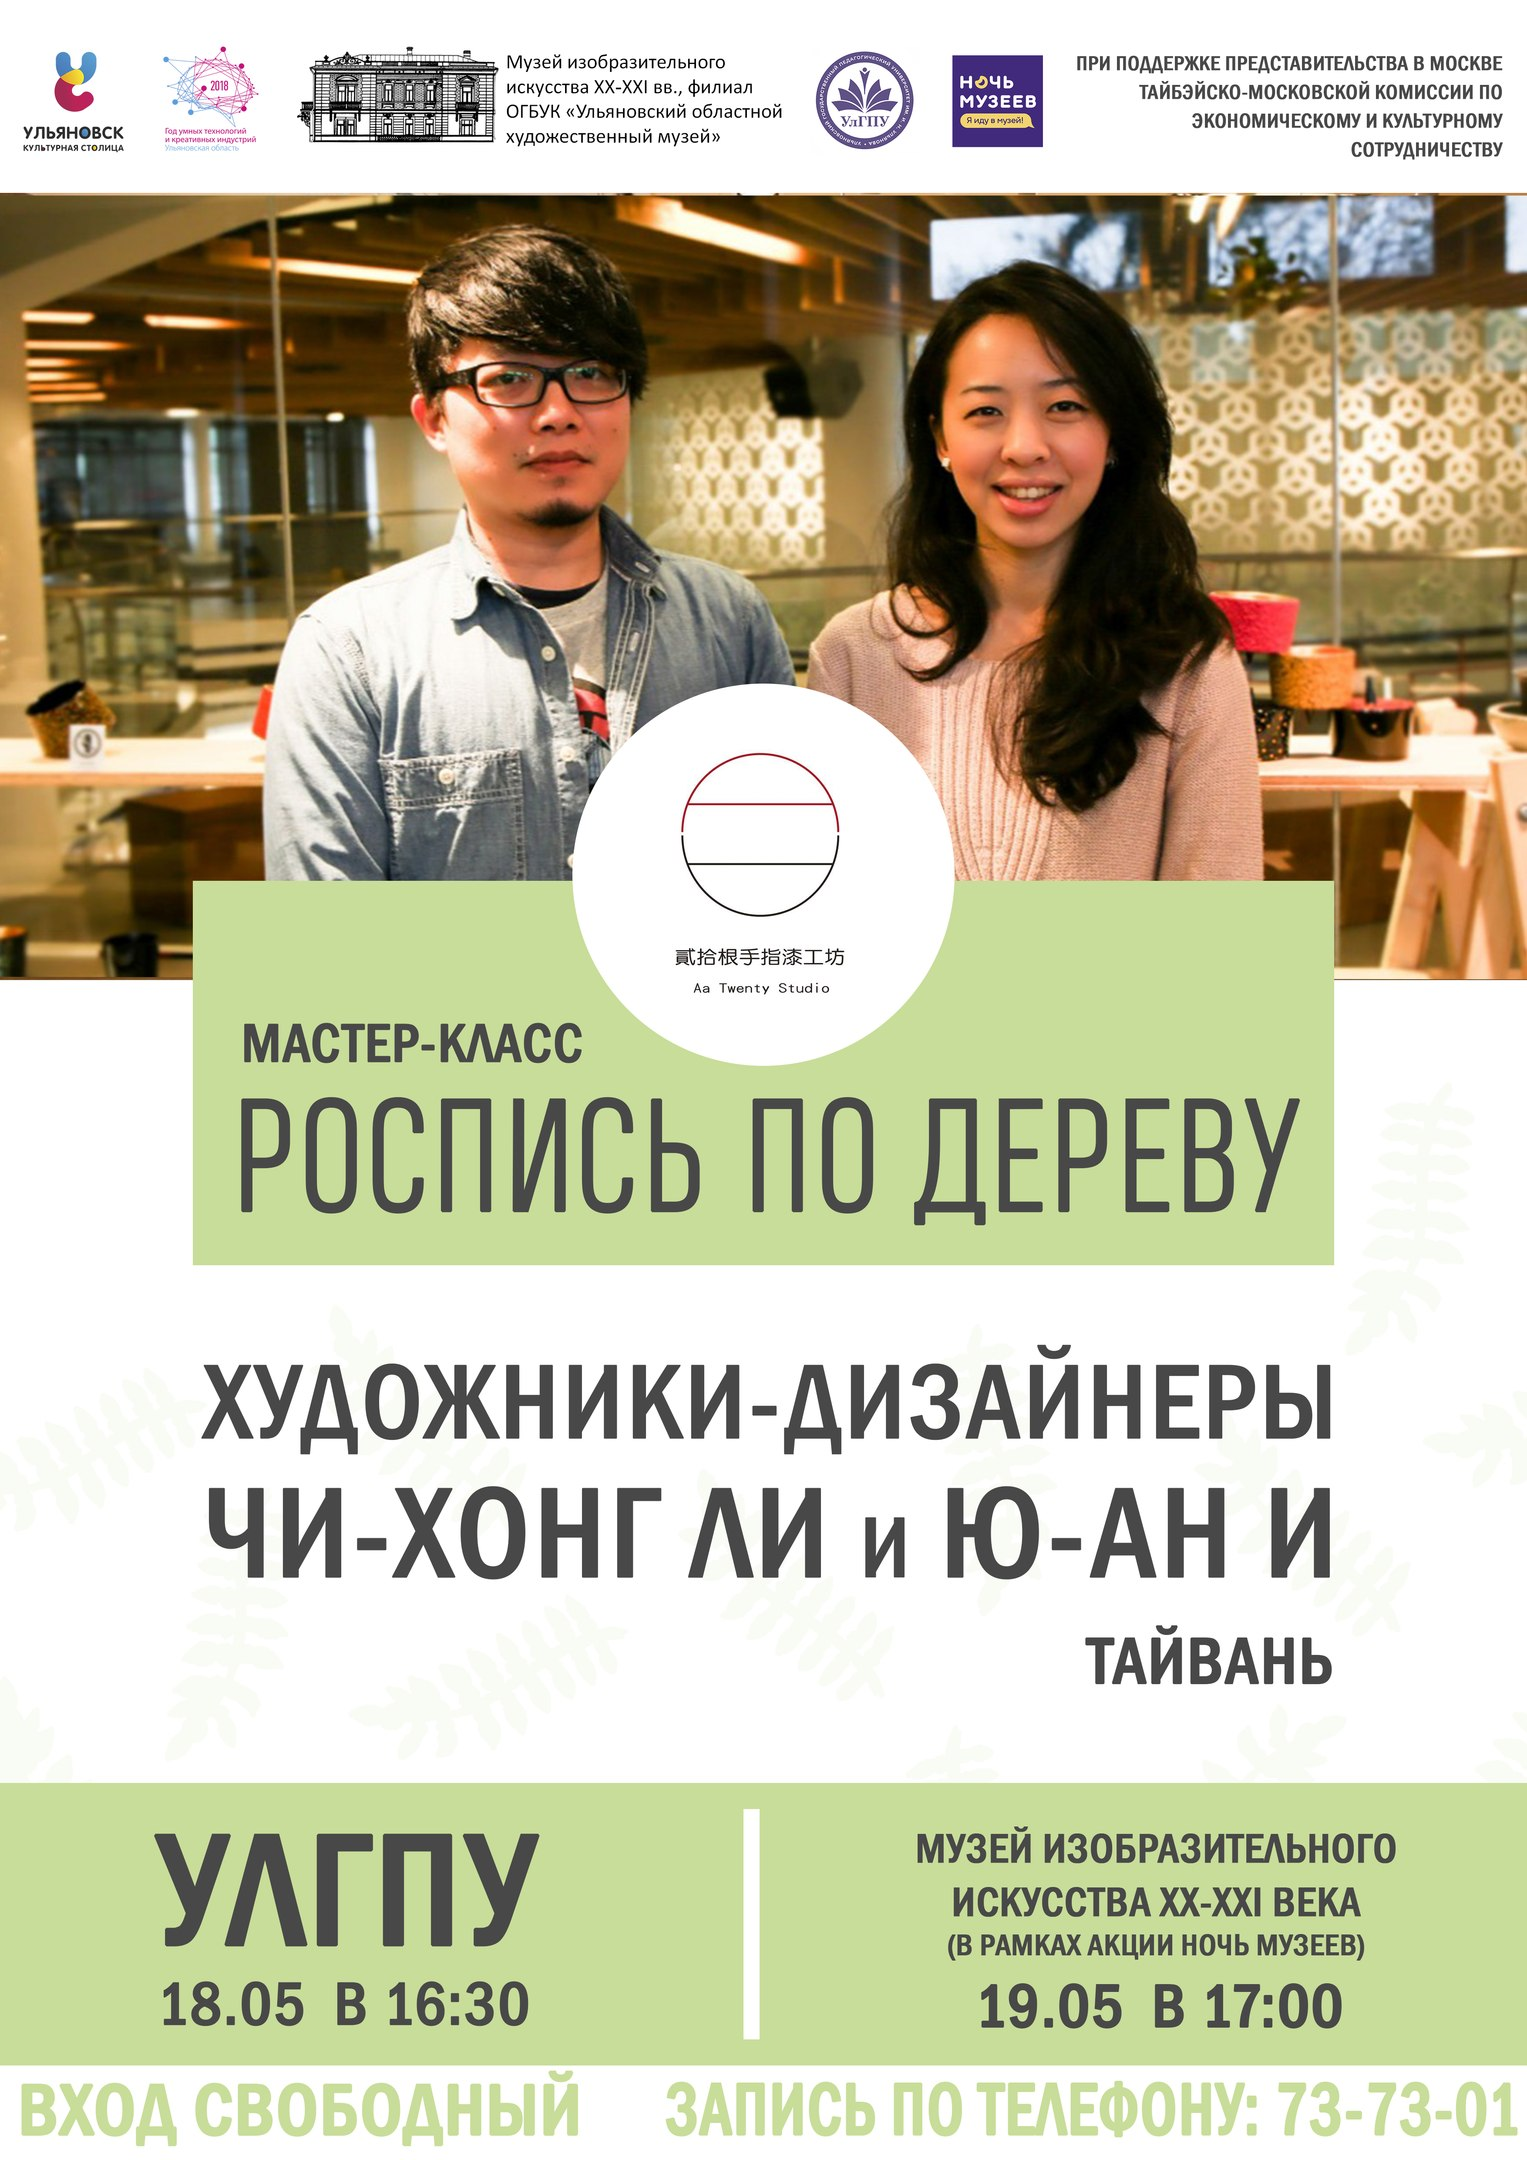 Taiwanese artisans to hold lacquer workshops in 3 Russian cities